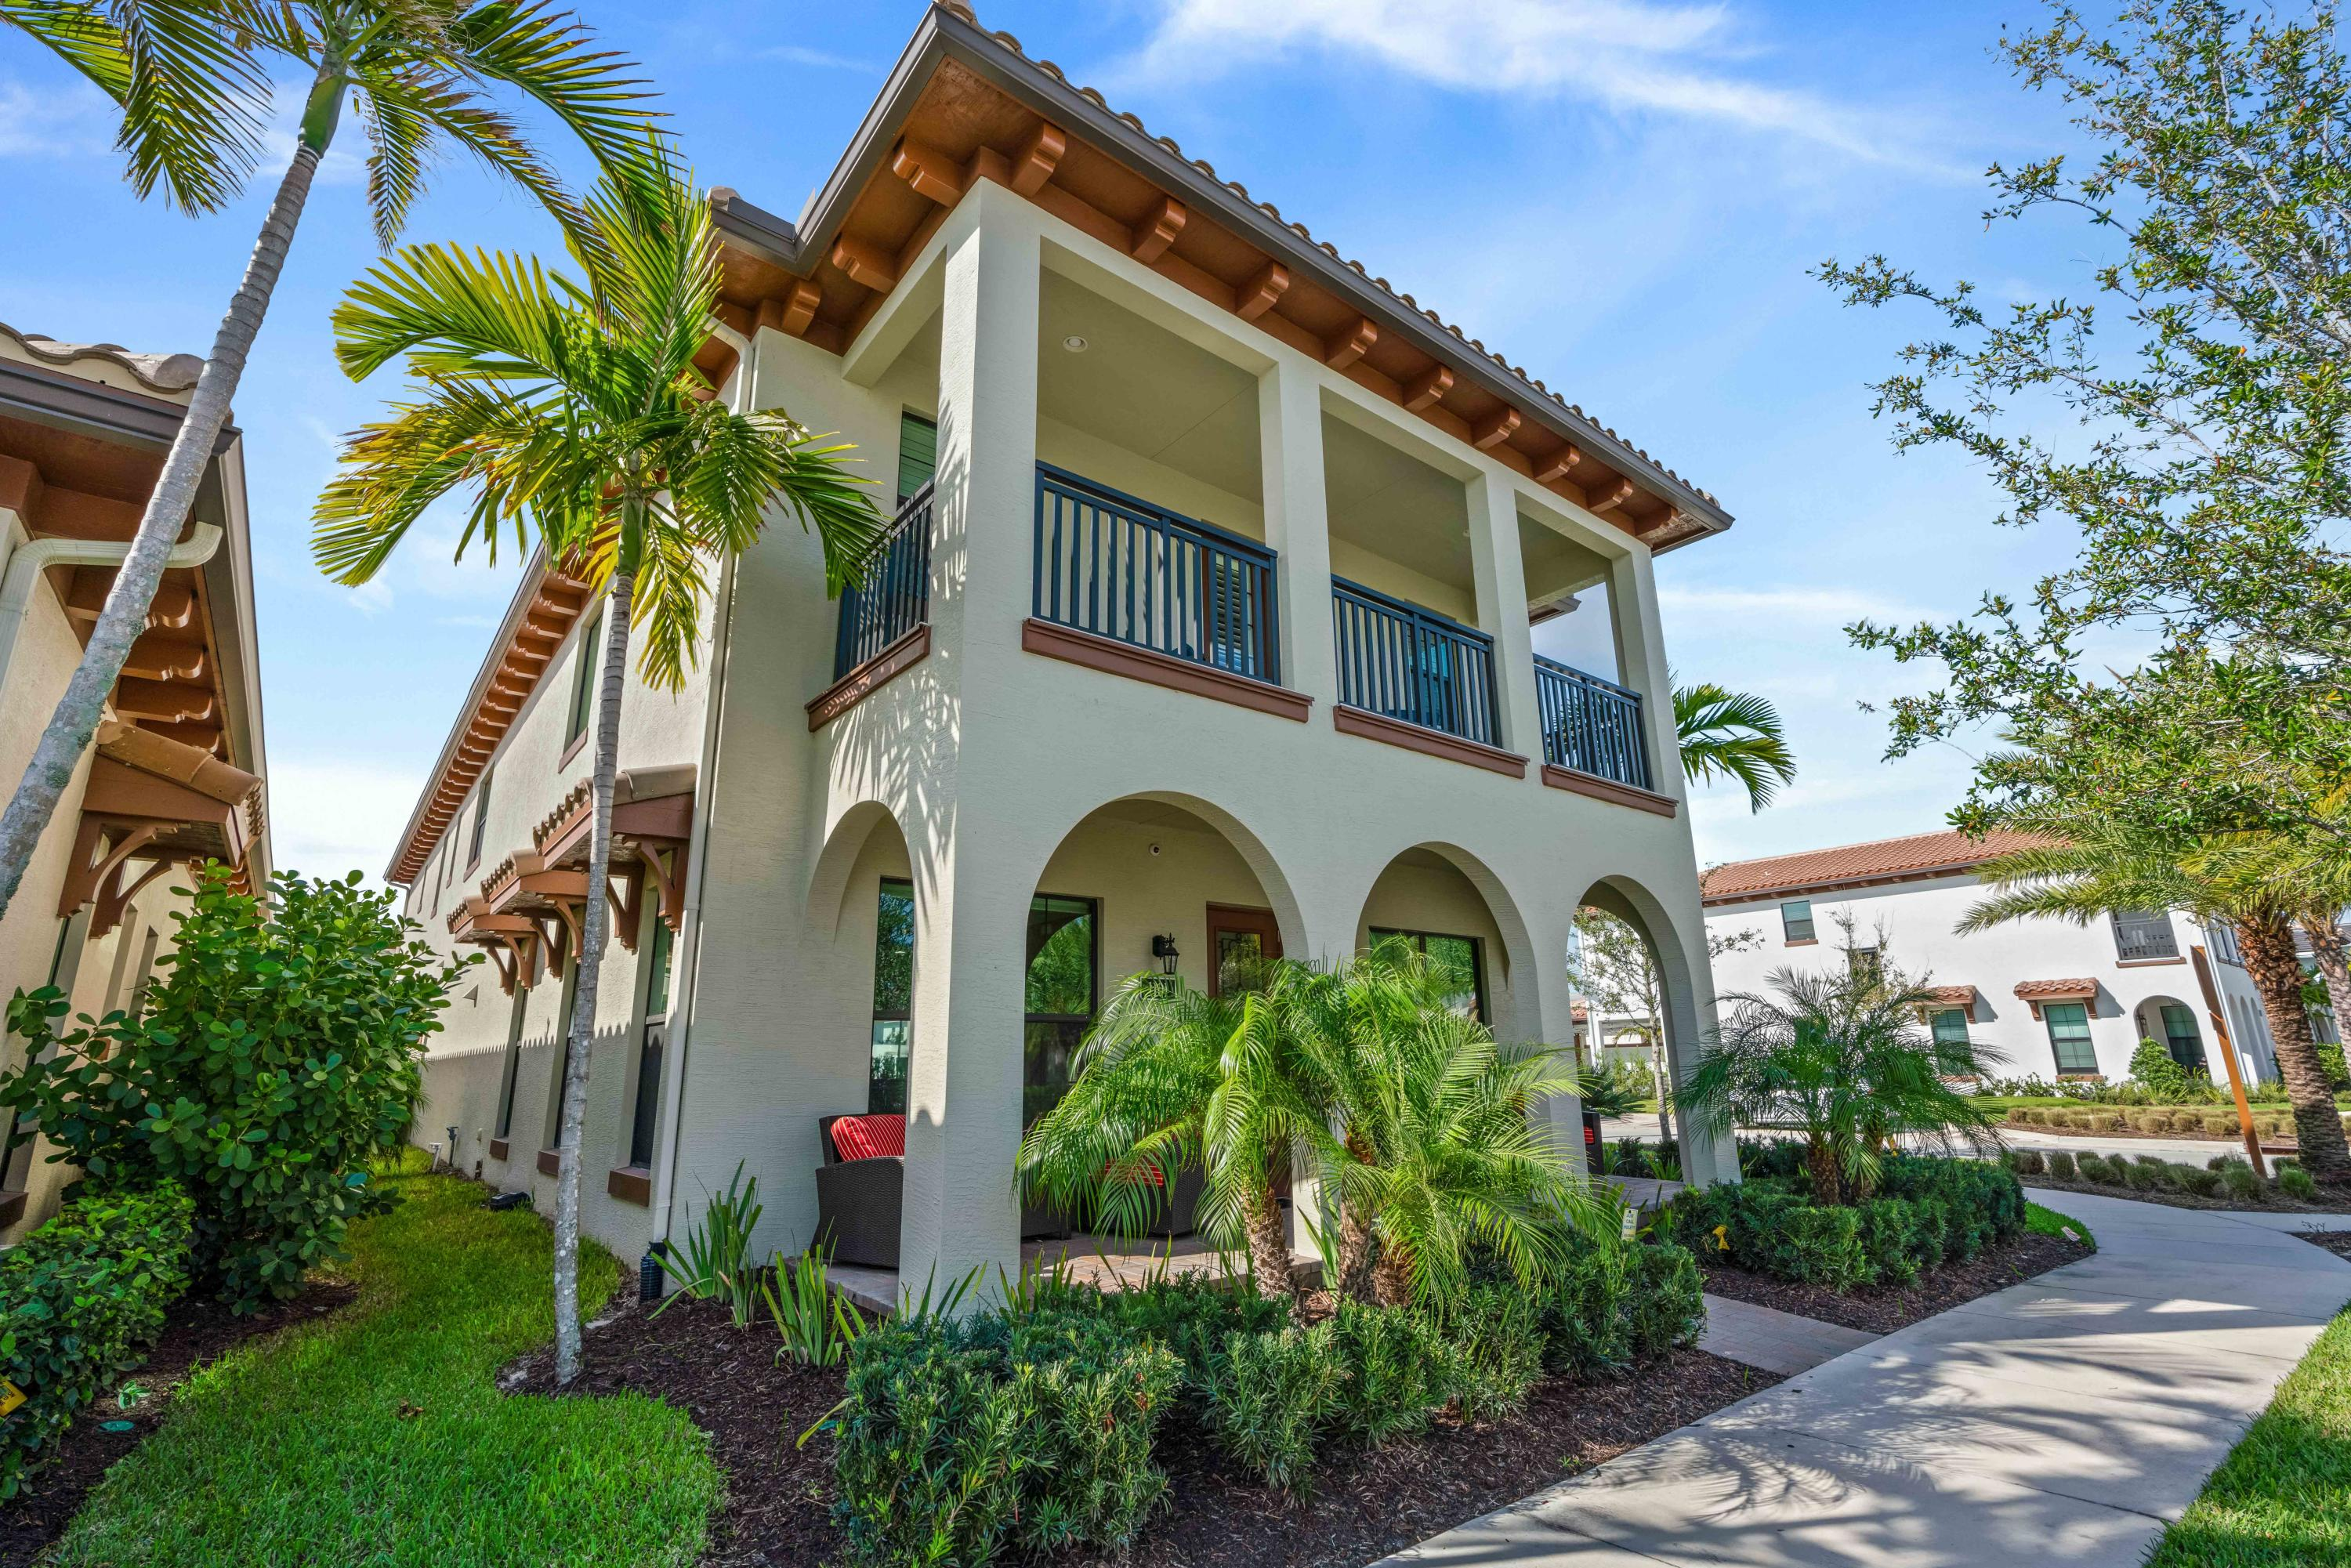 New Home for sale at 1101 Faulkner Terrace in Palm Beach Gardens